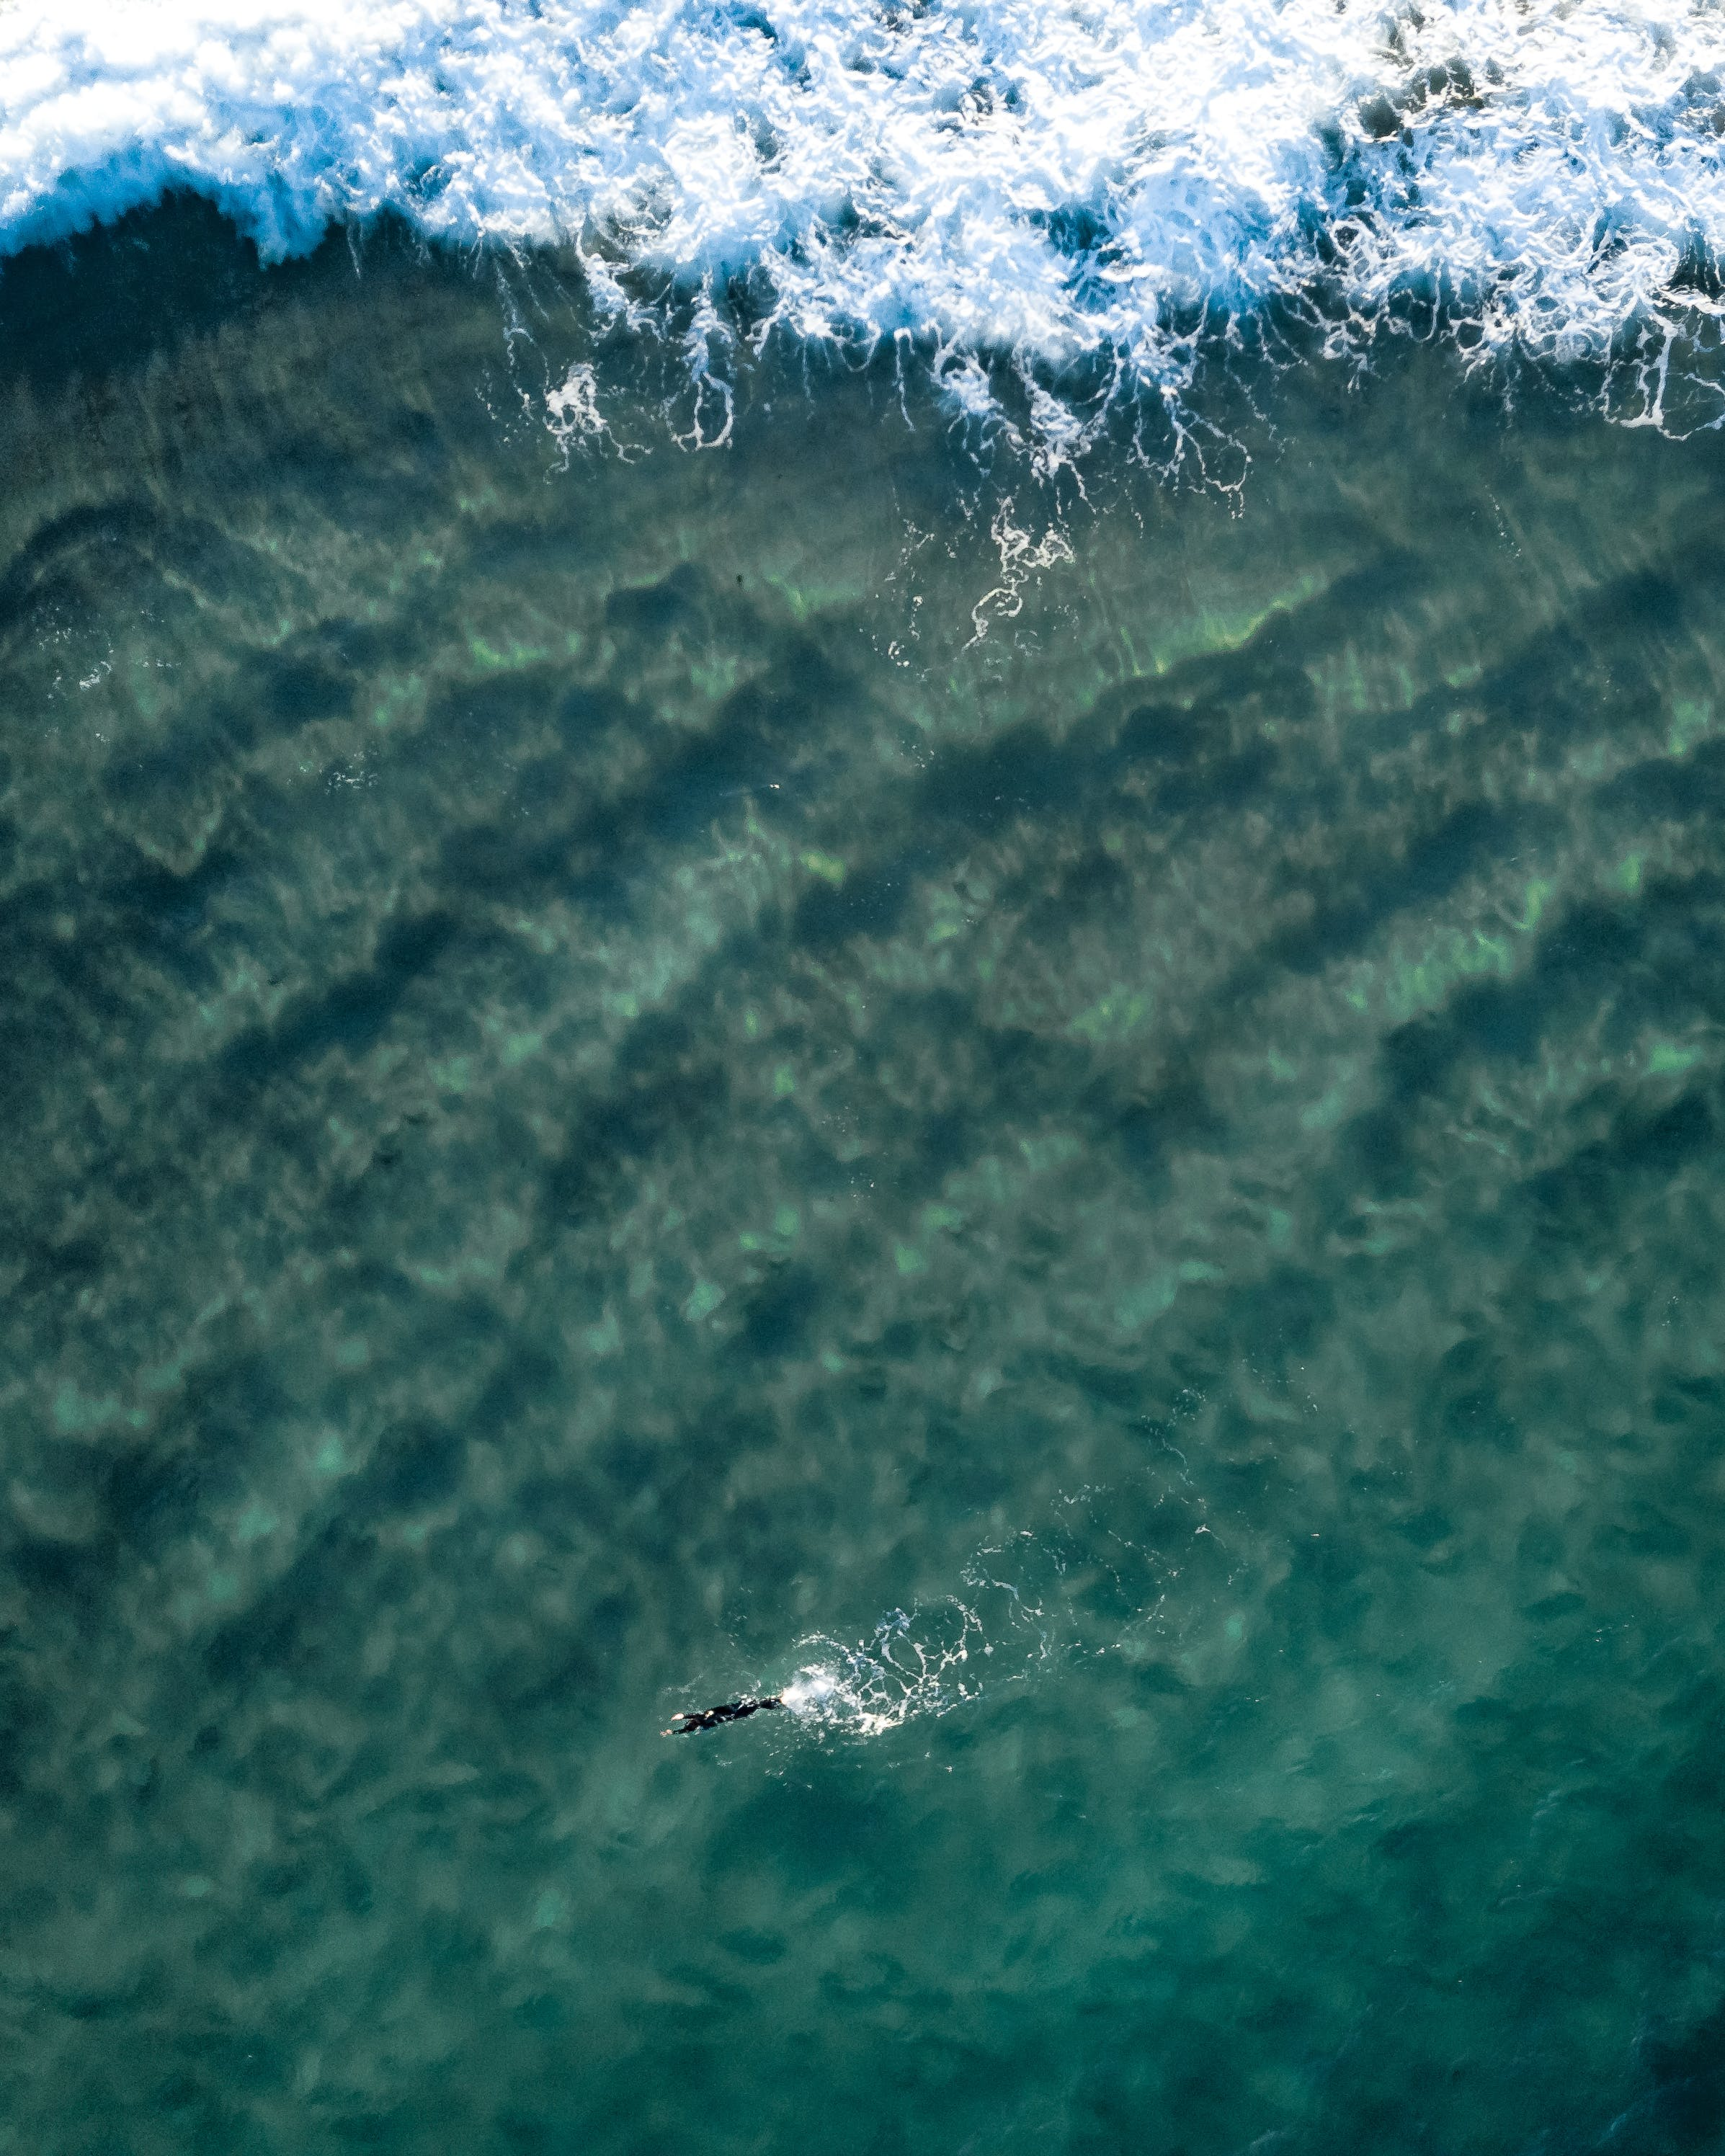 Aerial View of Person Swimming in Ocean